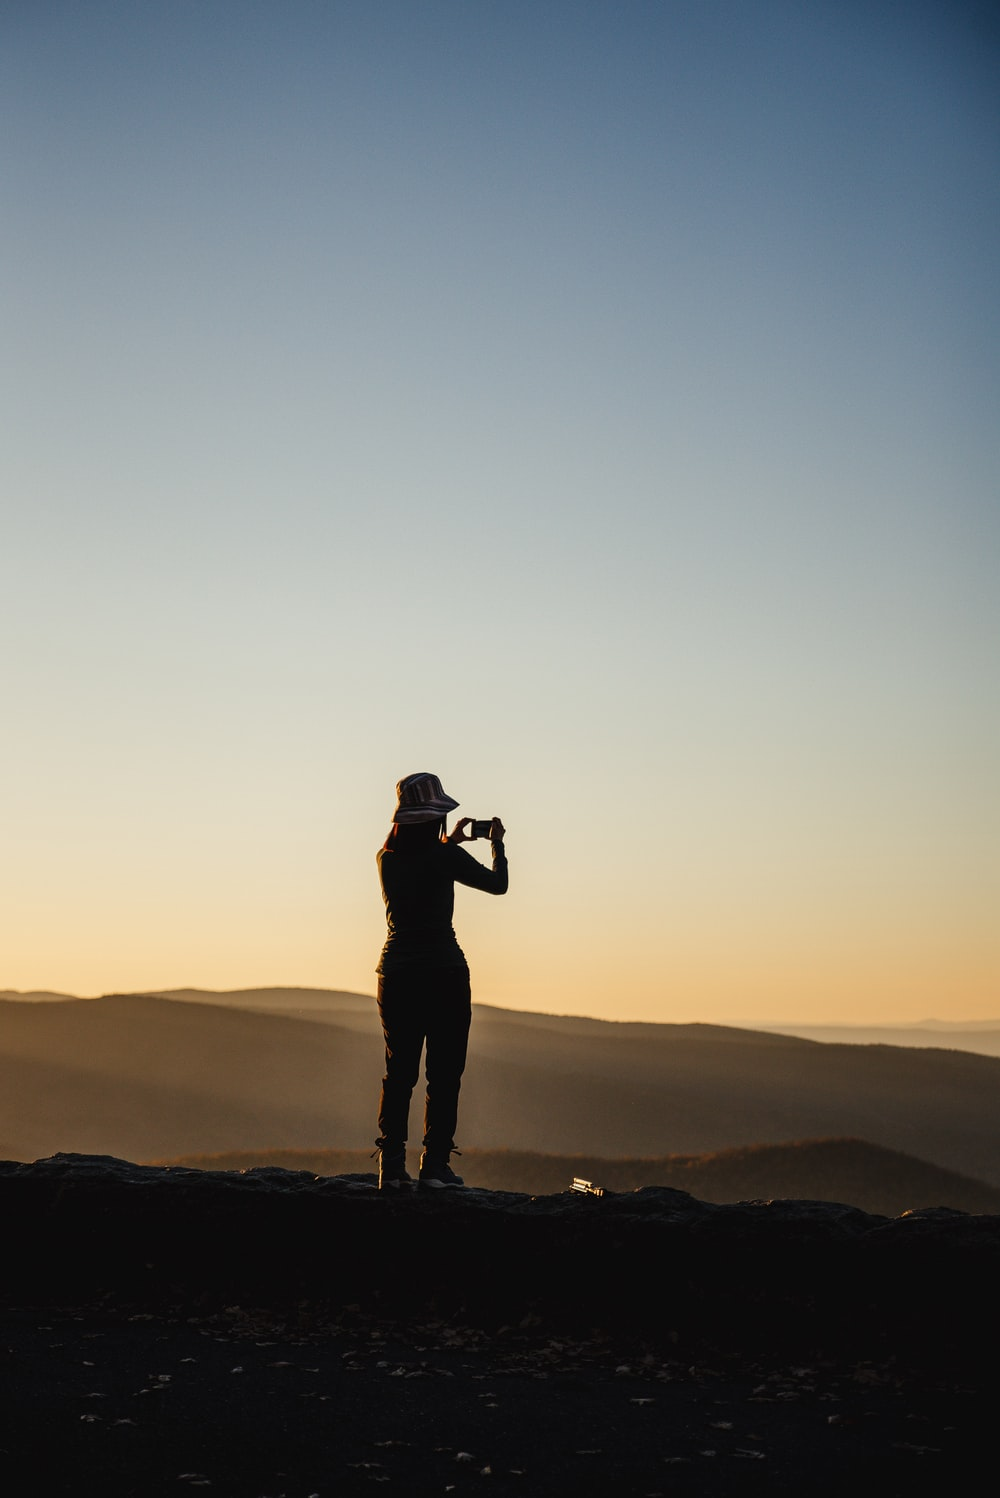 silhouette of man standing on top of mountain during sunset